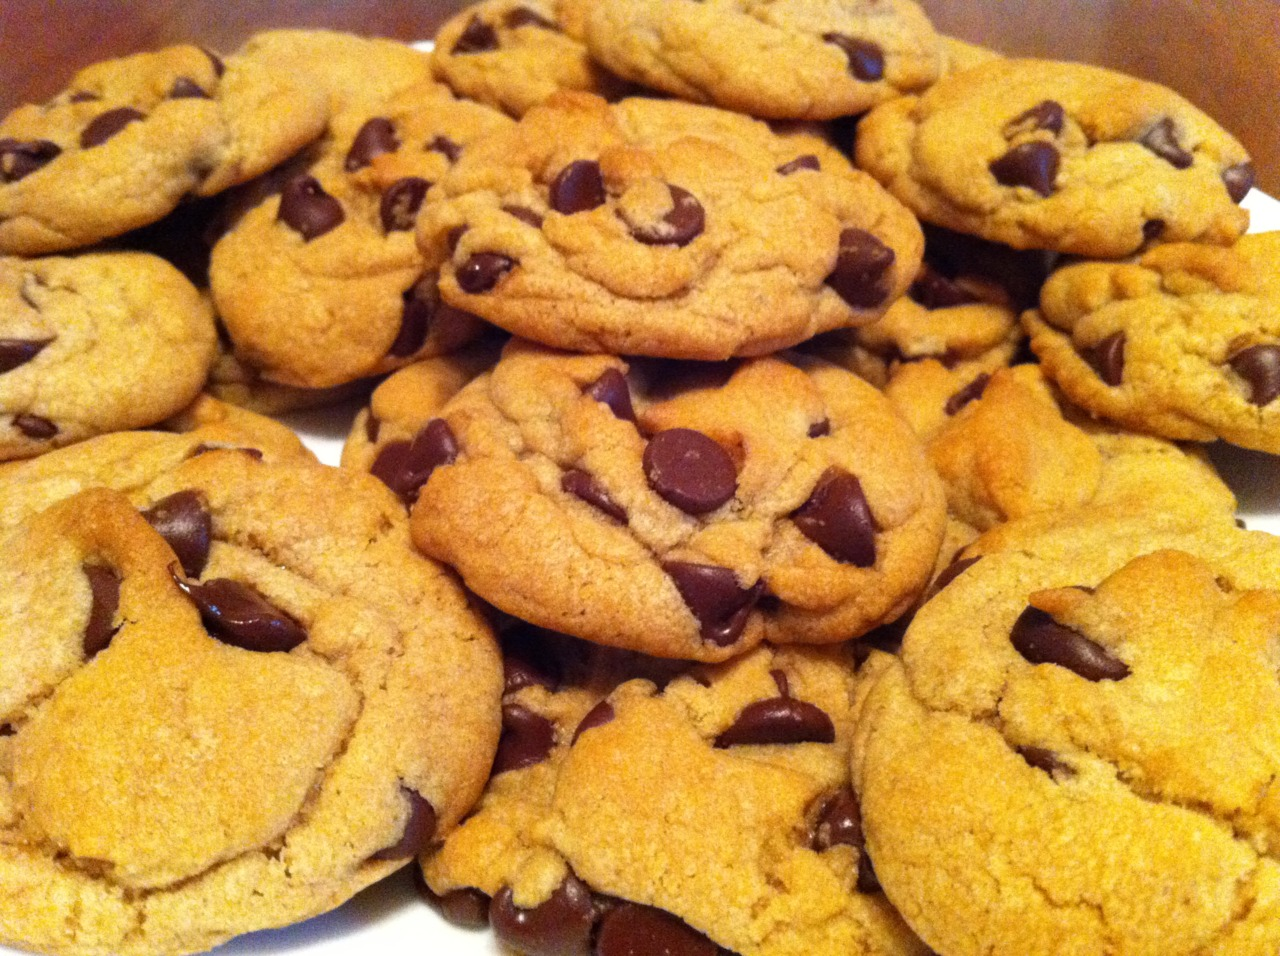 Chocolate Chip Cookies! It's National Chocolate Chip Day!